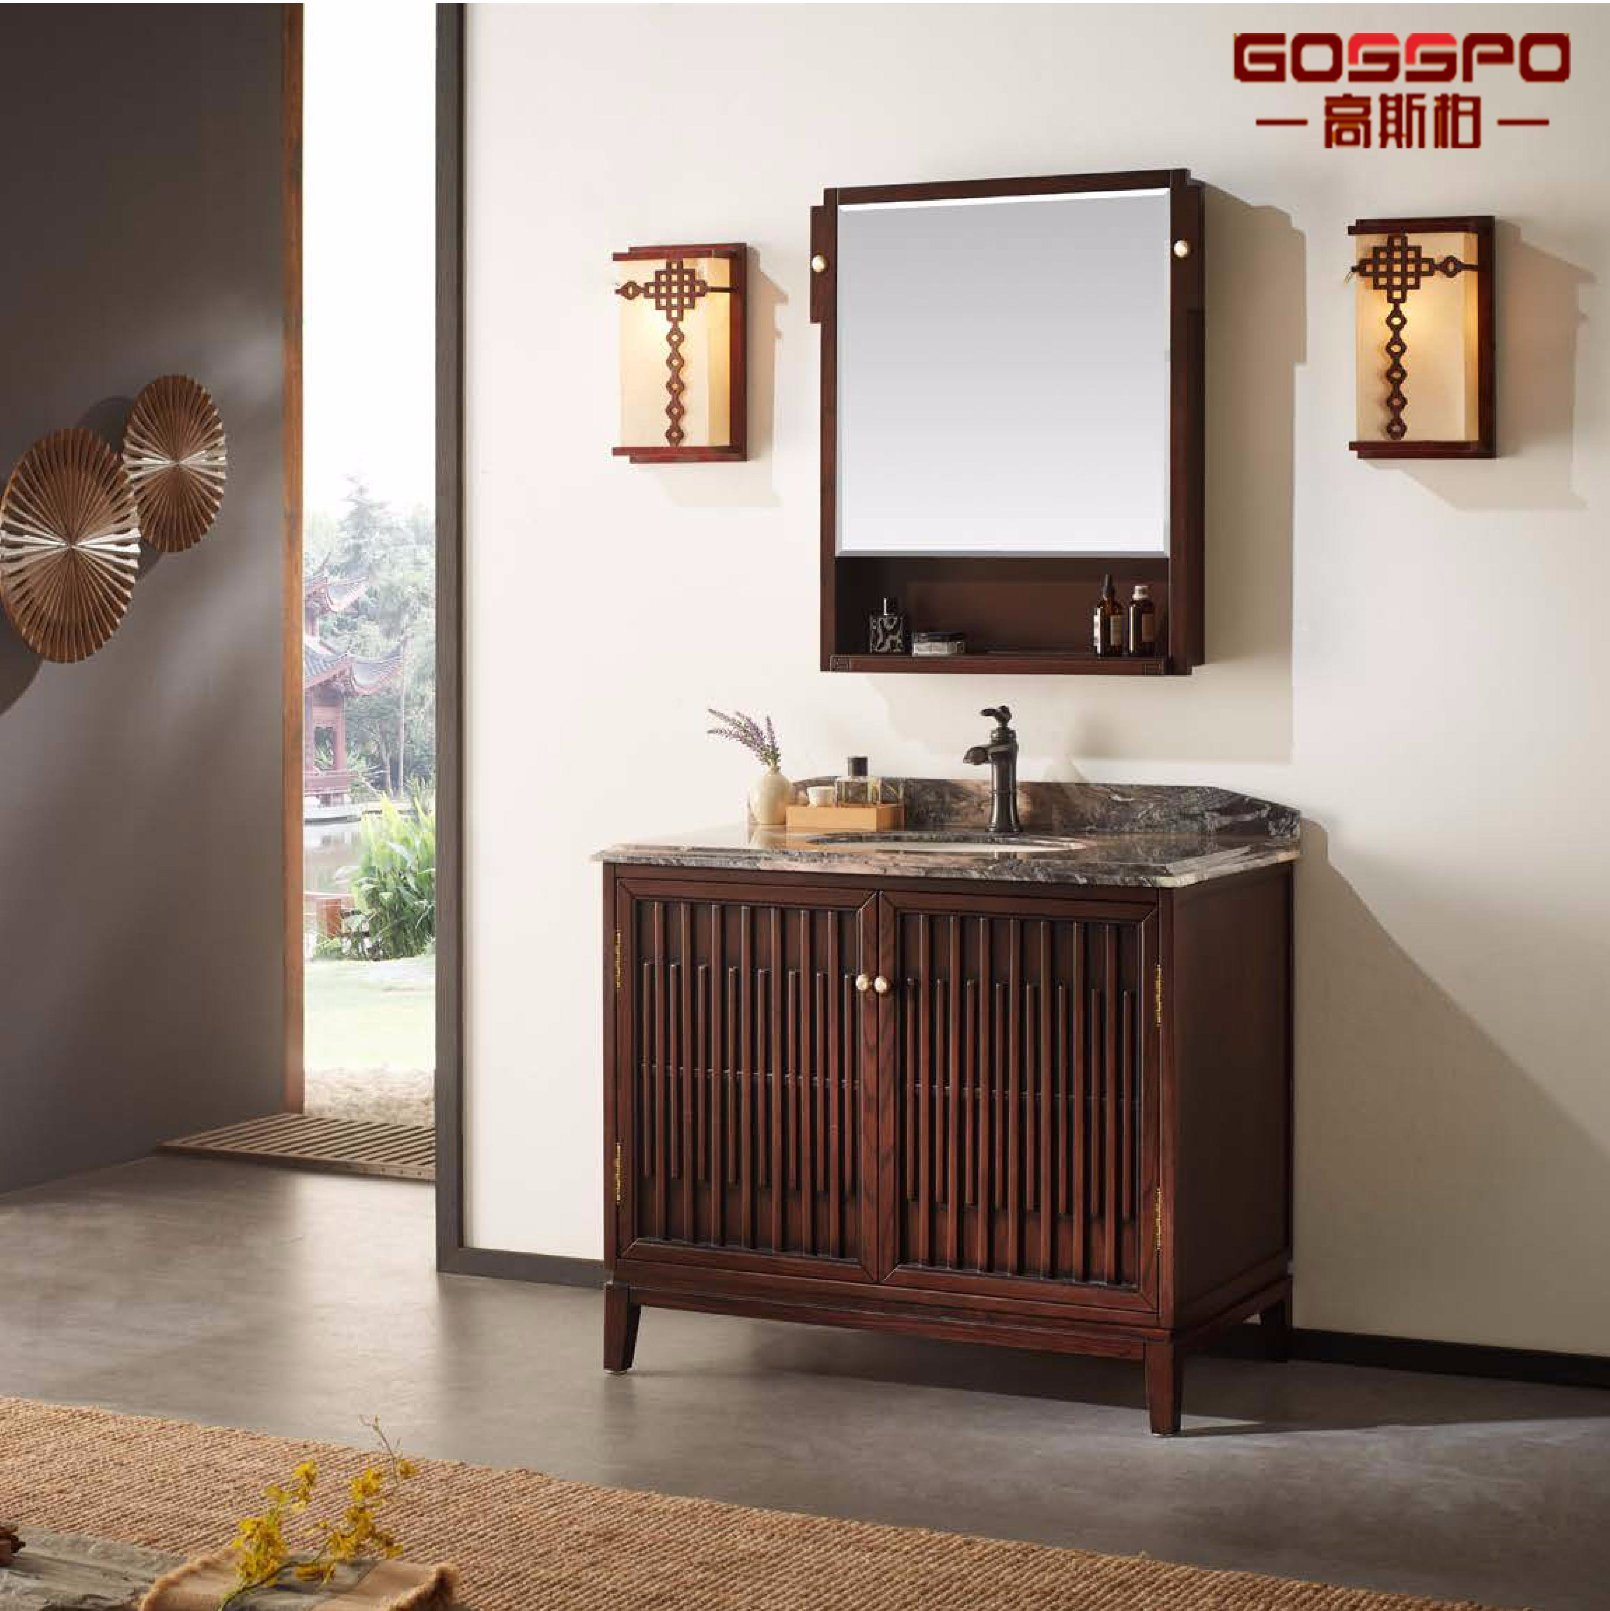 China Spanish Style Solid Wood Mahogany Bathroom Floor Cabinet Gsp9 008 China Bathroom Cabinets Bathroom Floor Cabinet